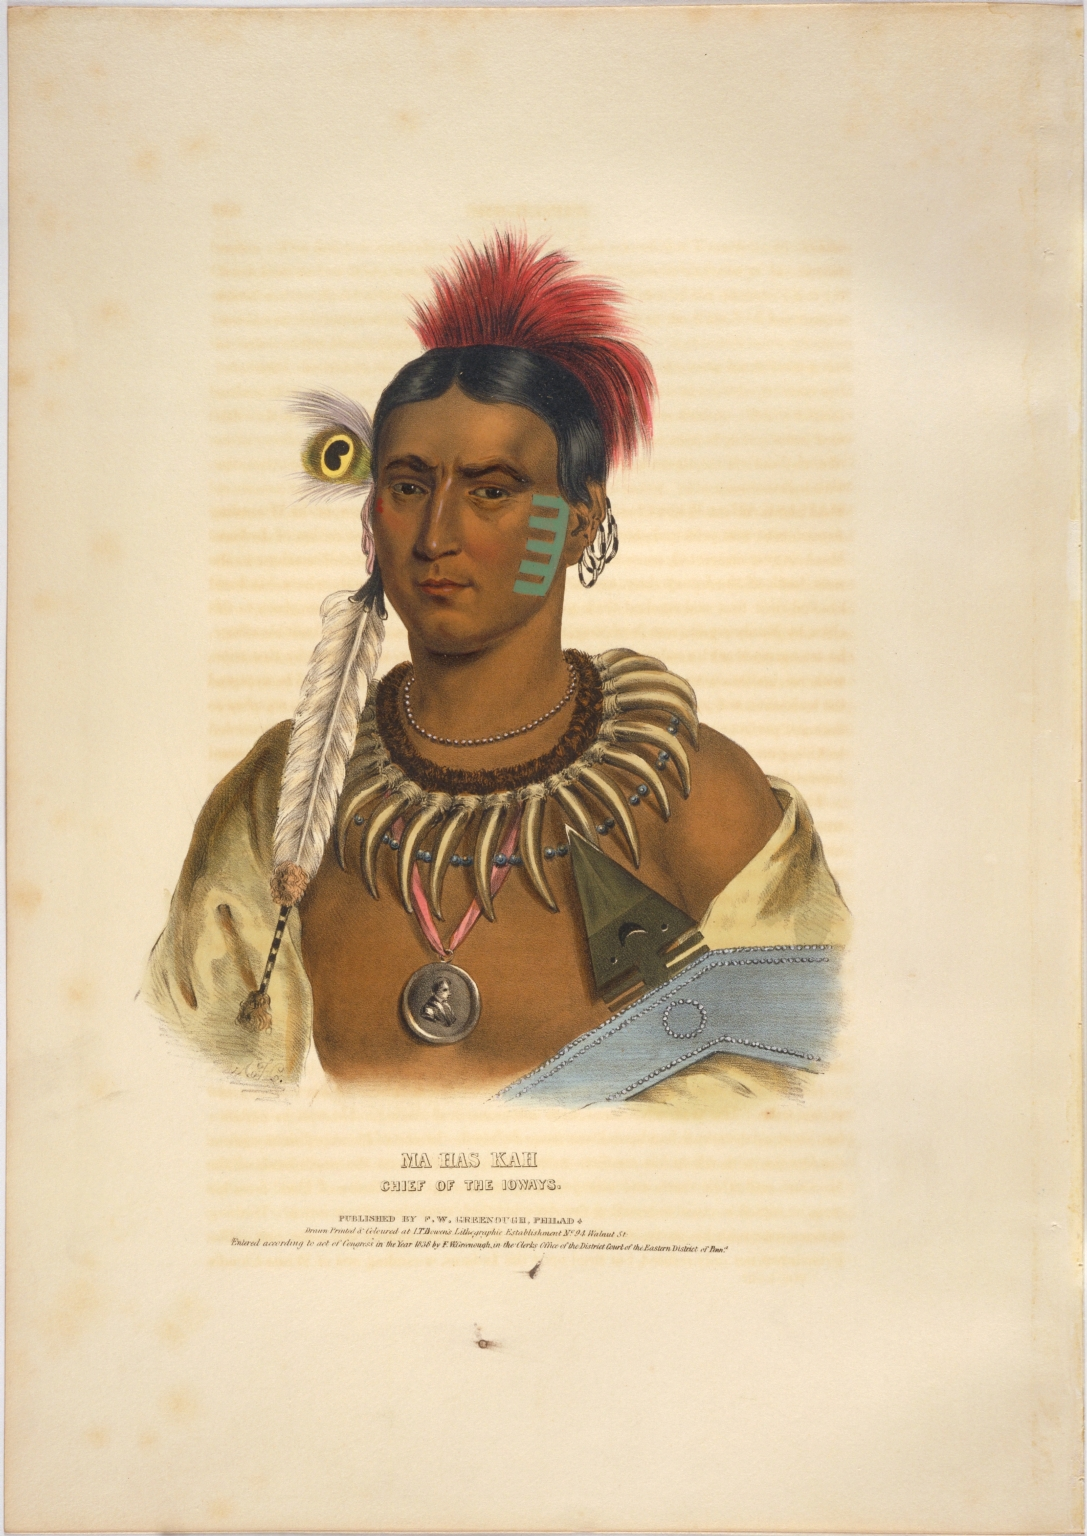 Ma has kah, chief of the Ioways